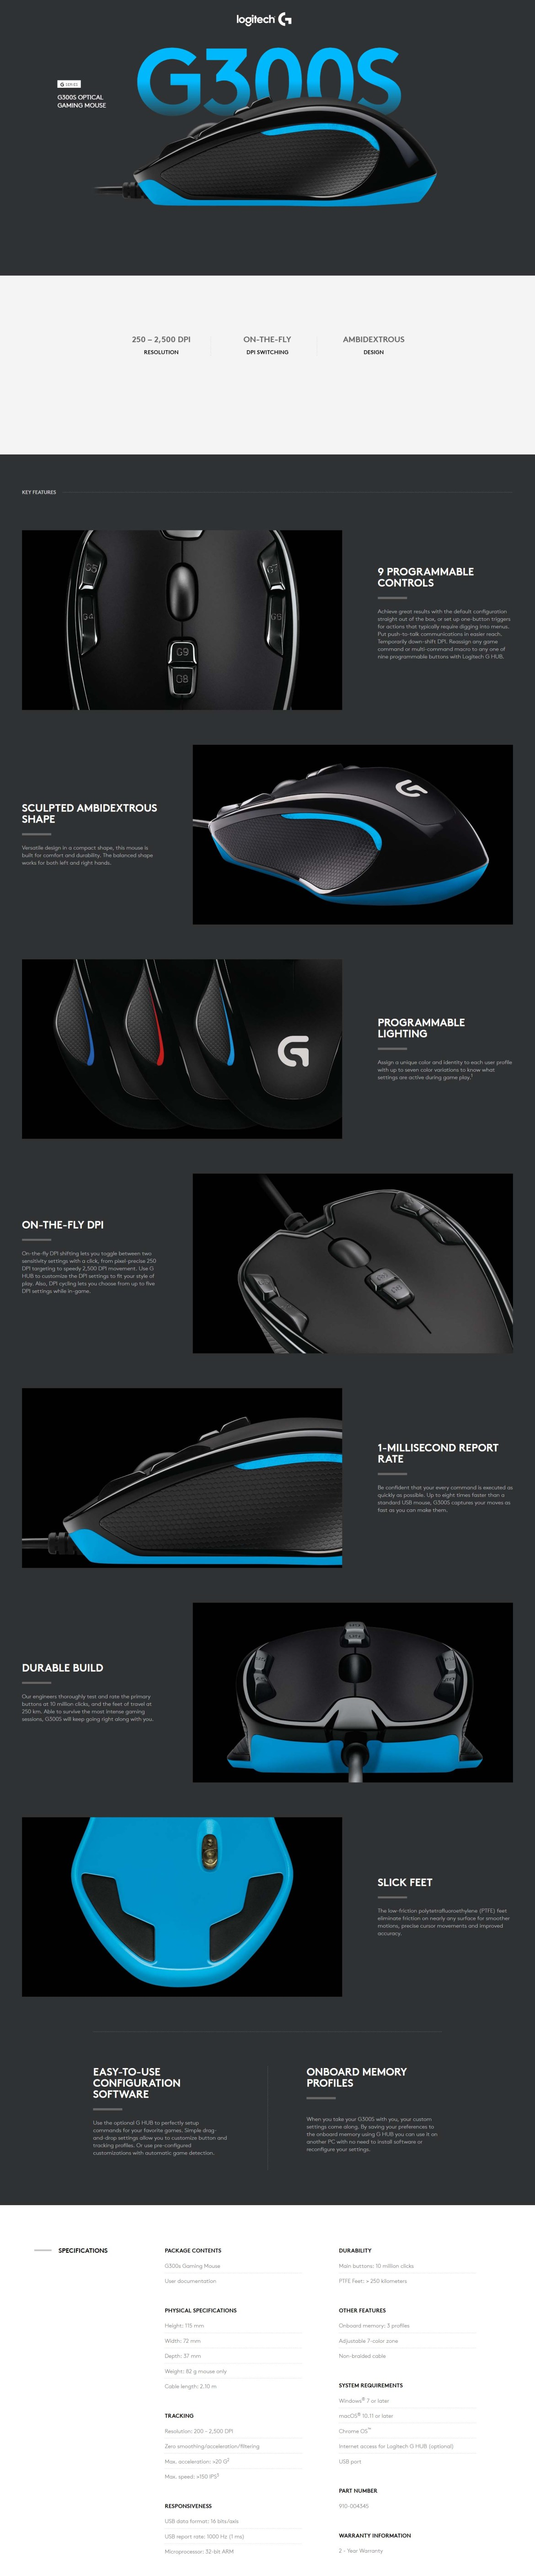 Logitech G300s Optical Gaming Mouse - Product No: 910-004347